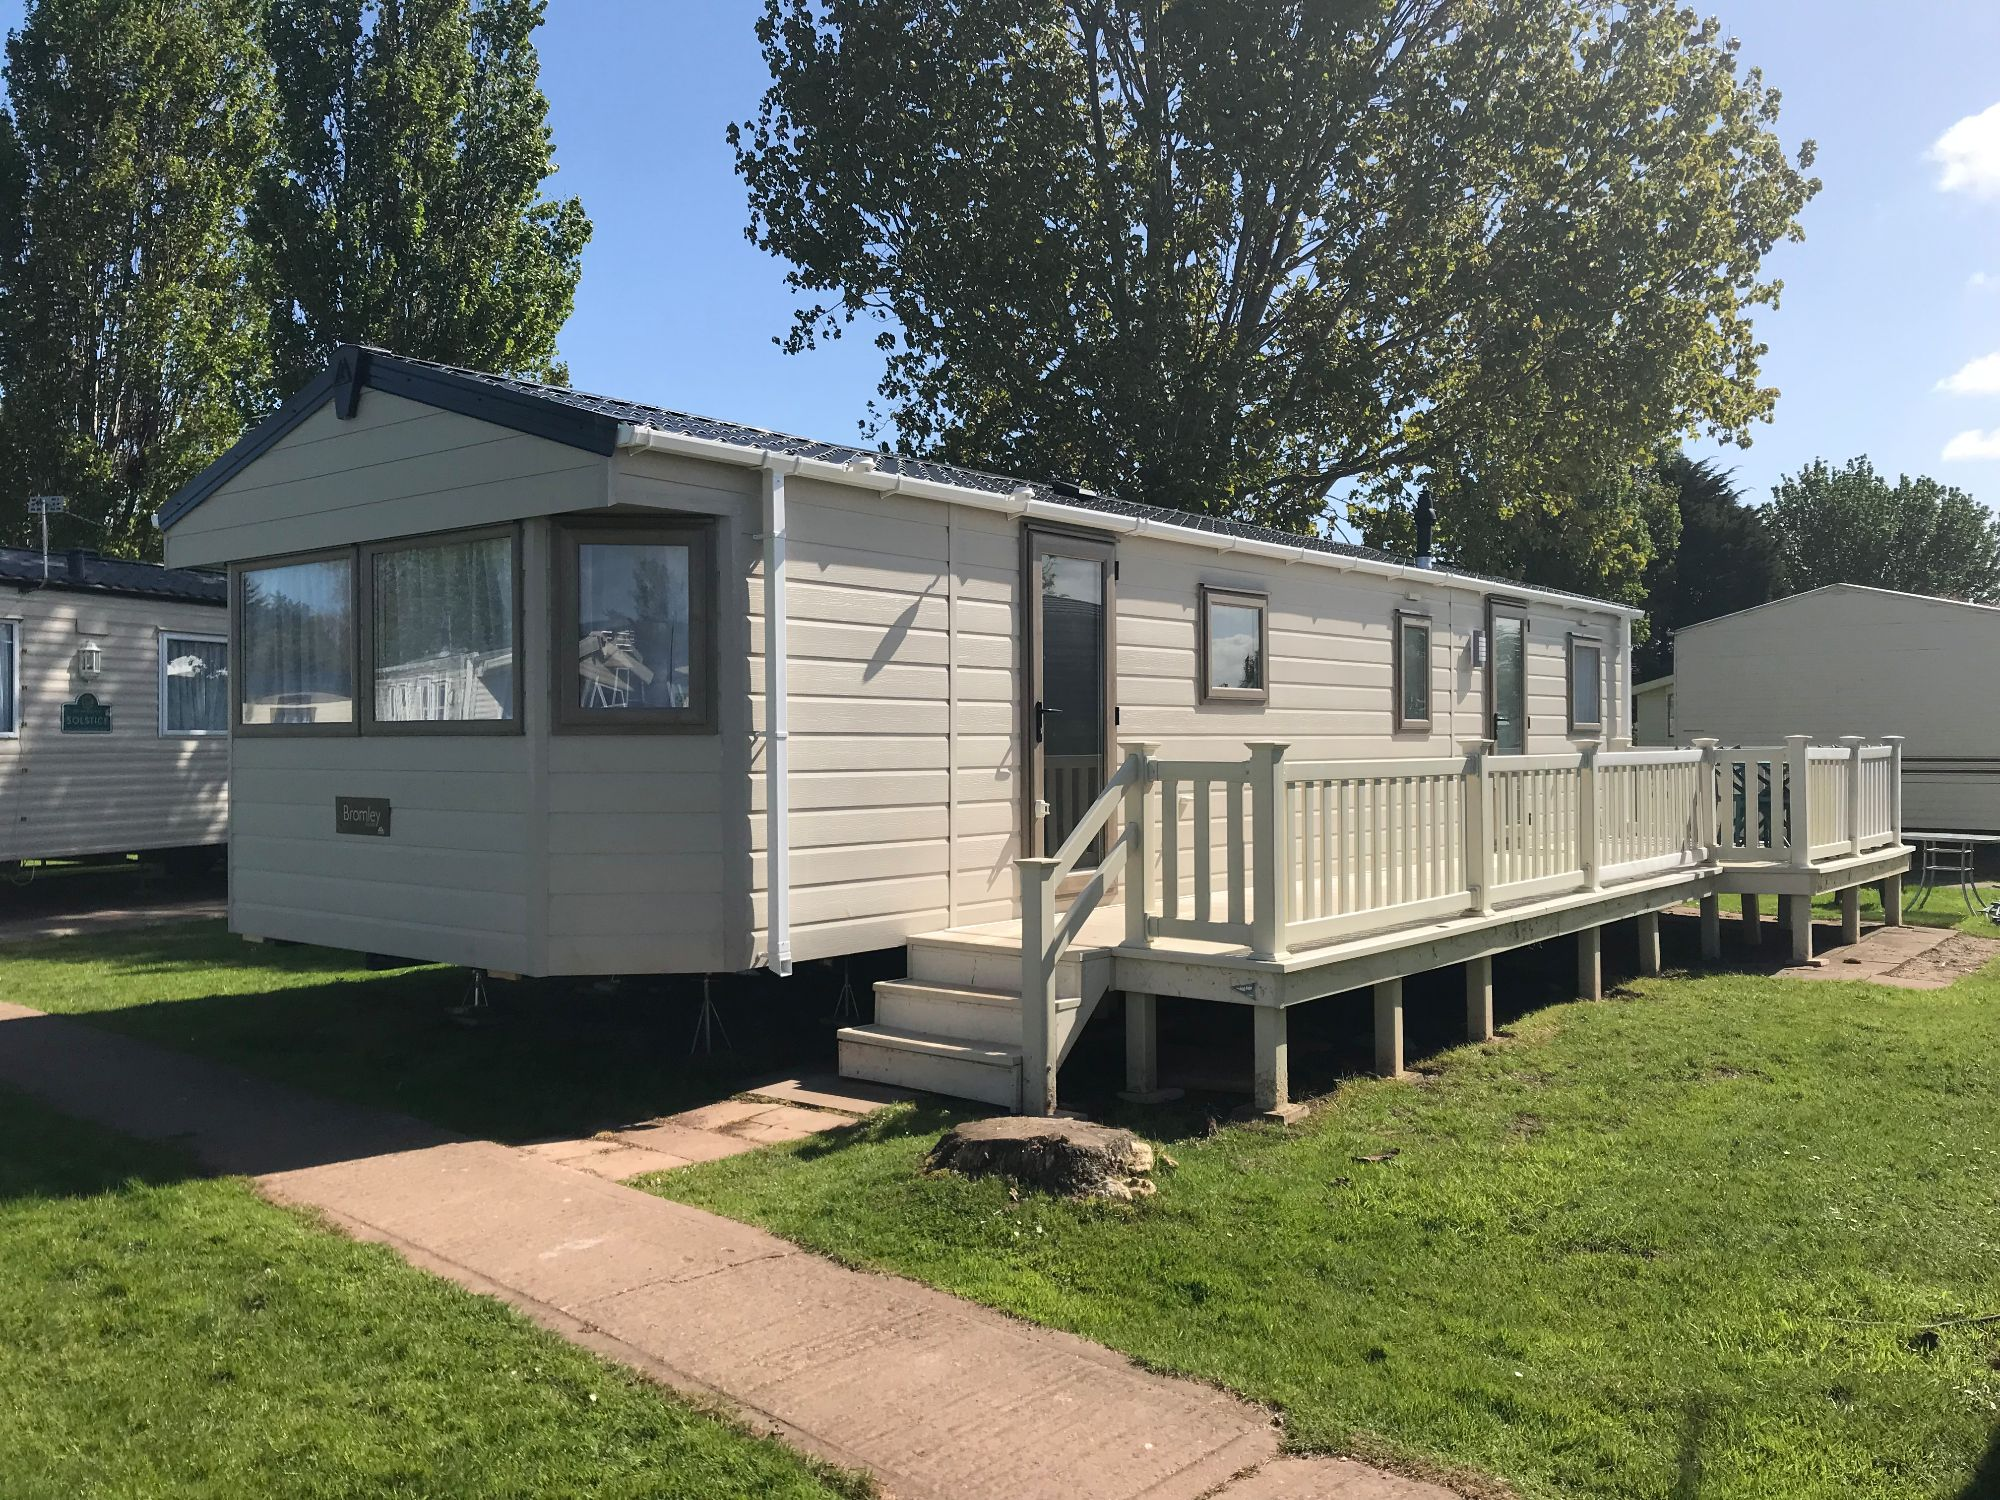 4 bedroom 8 to 10 berth caravan